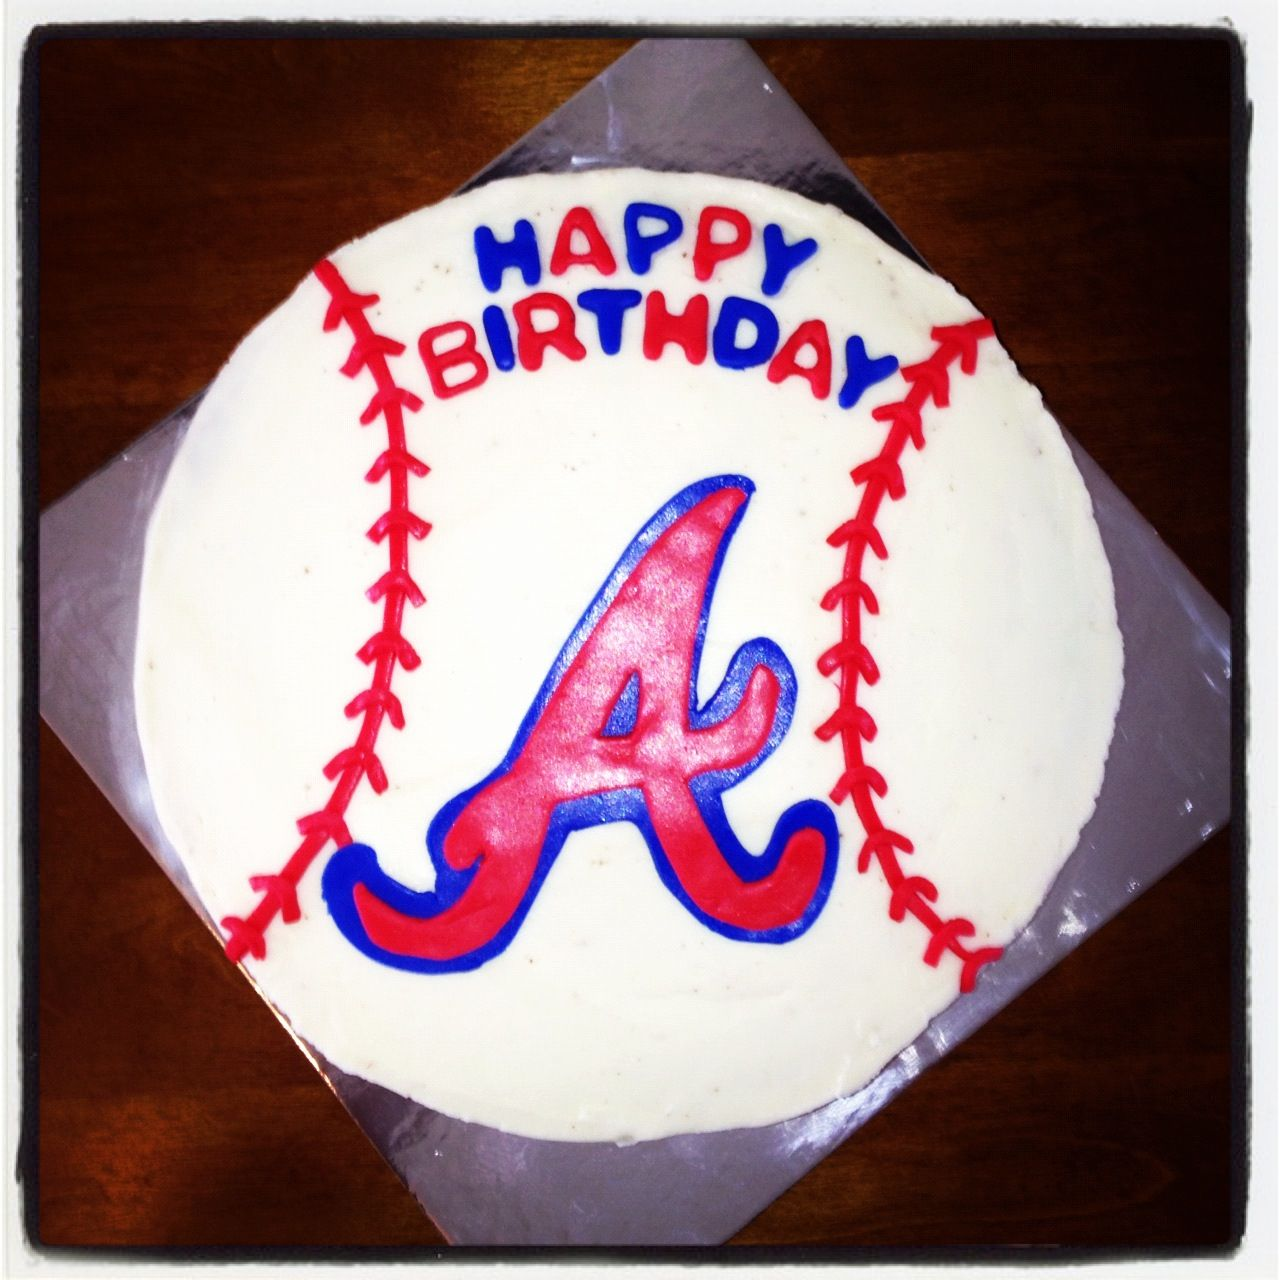 Atlanta Braves Cake By Sweet E's Cakery Www.facebook.com/sweetescakery